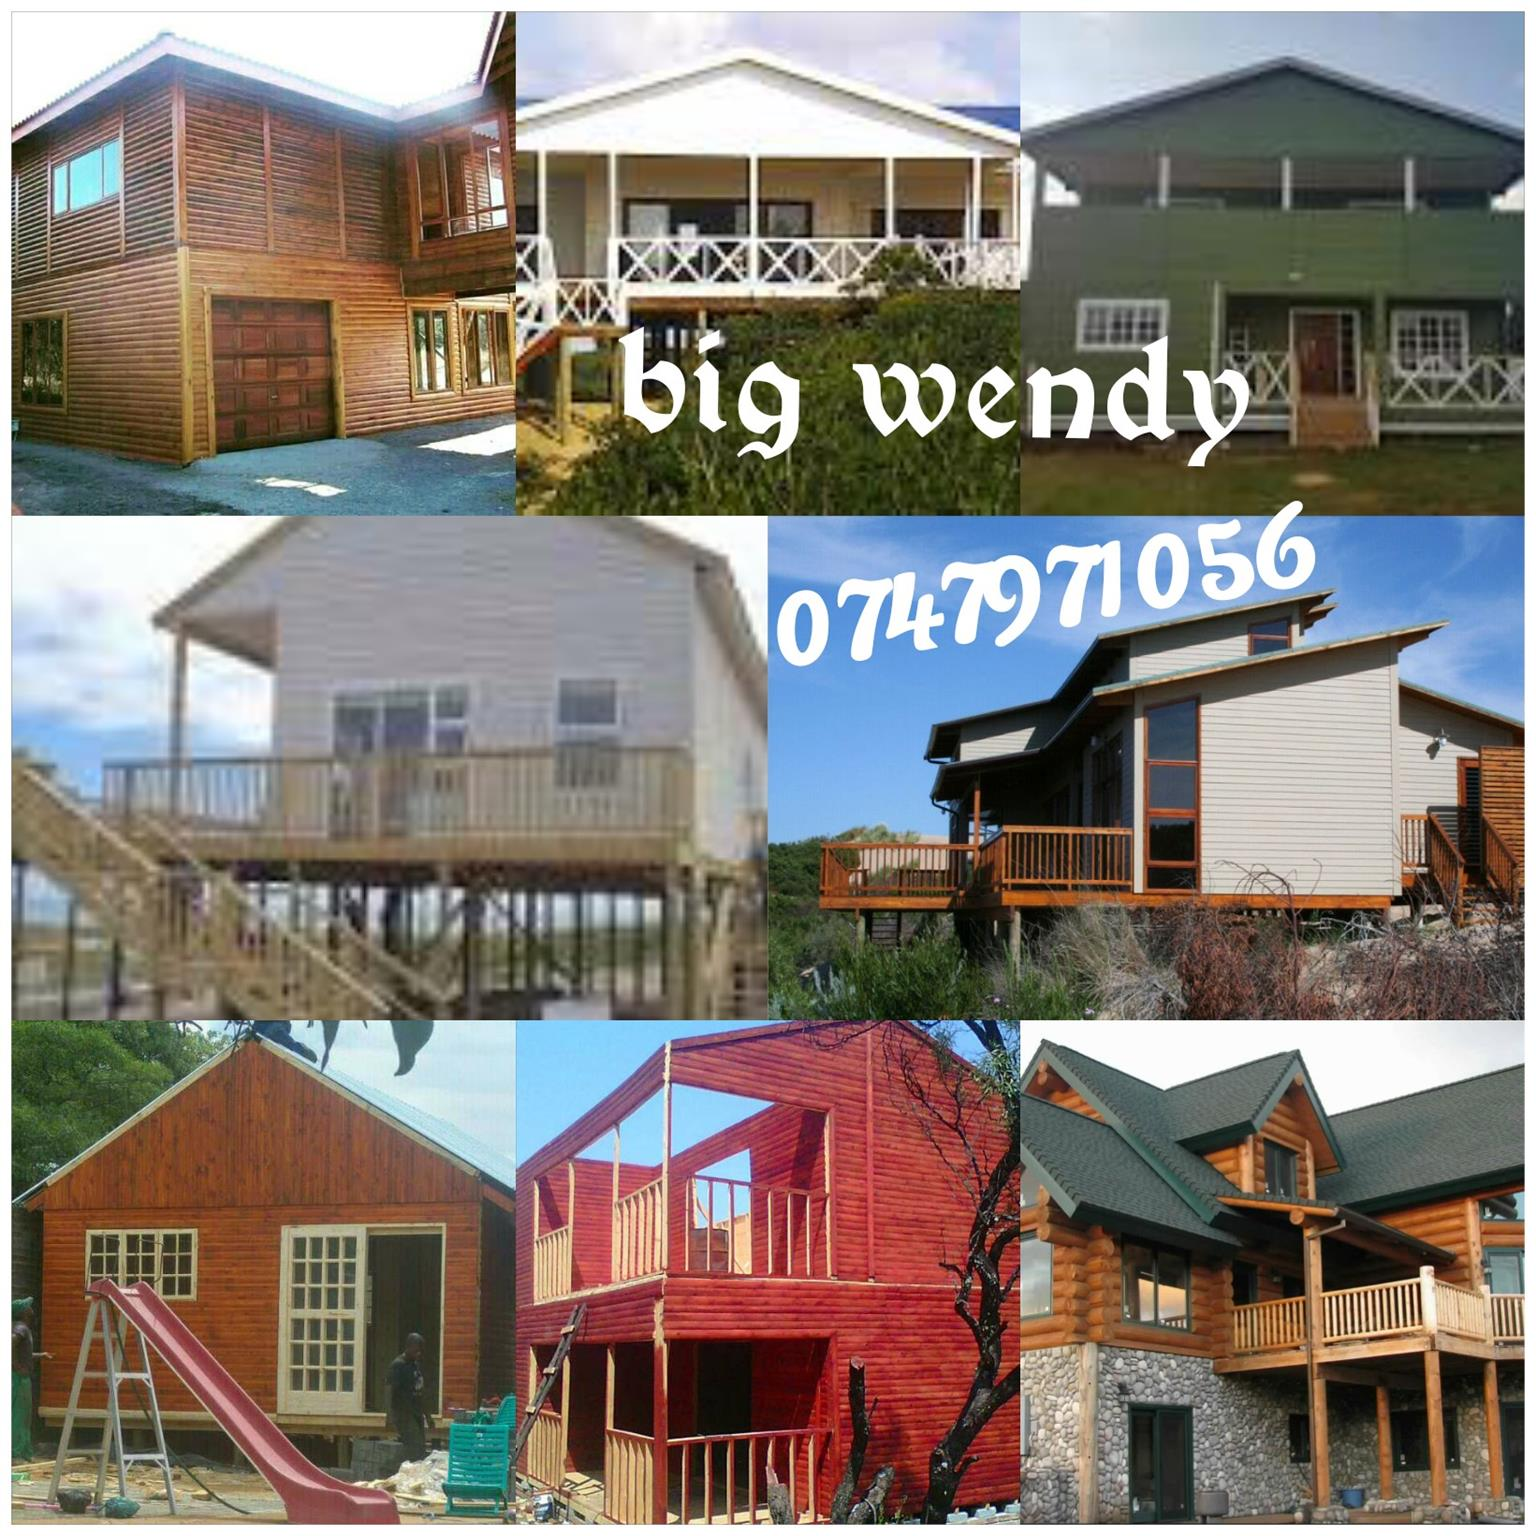 PS Wendy